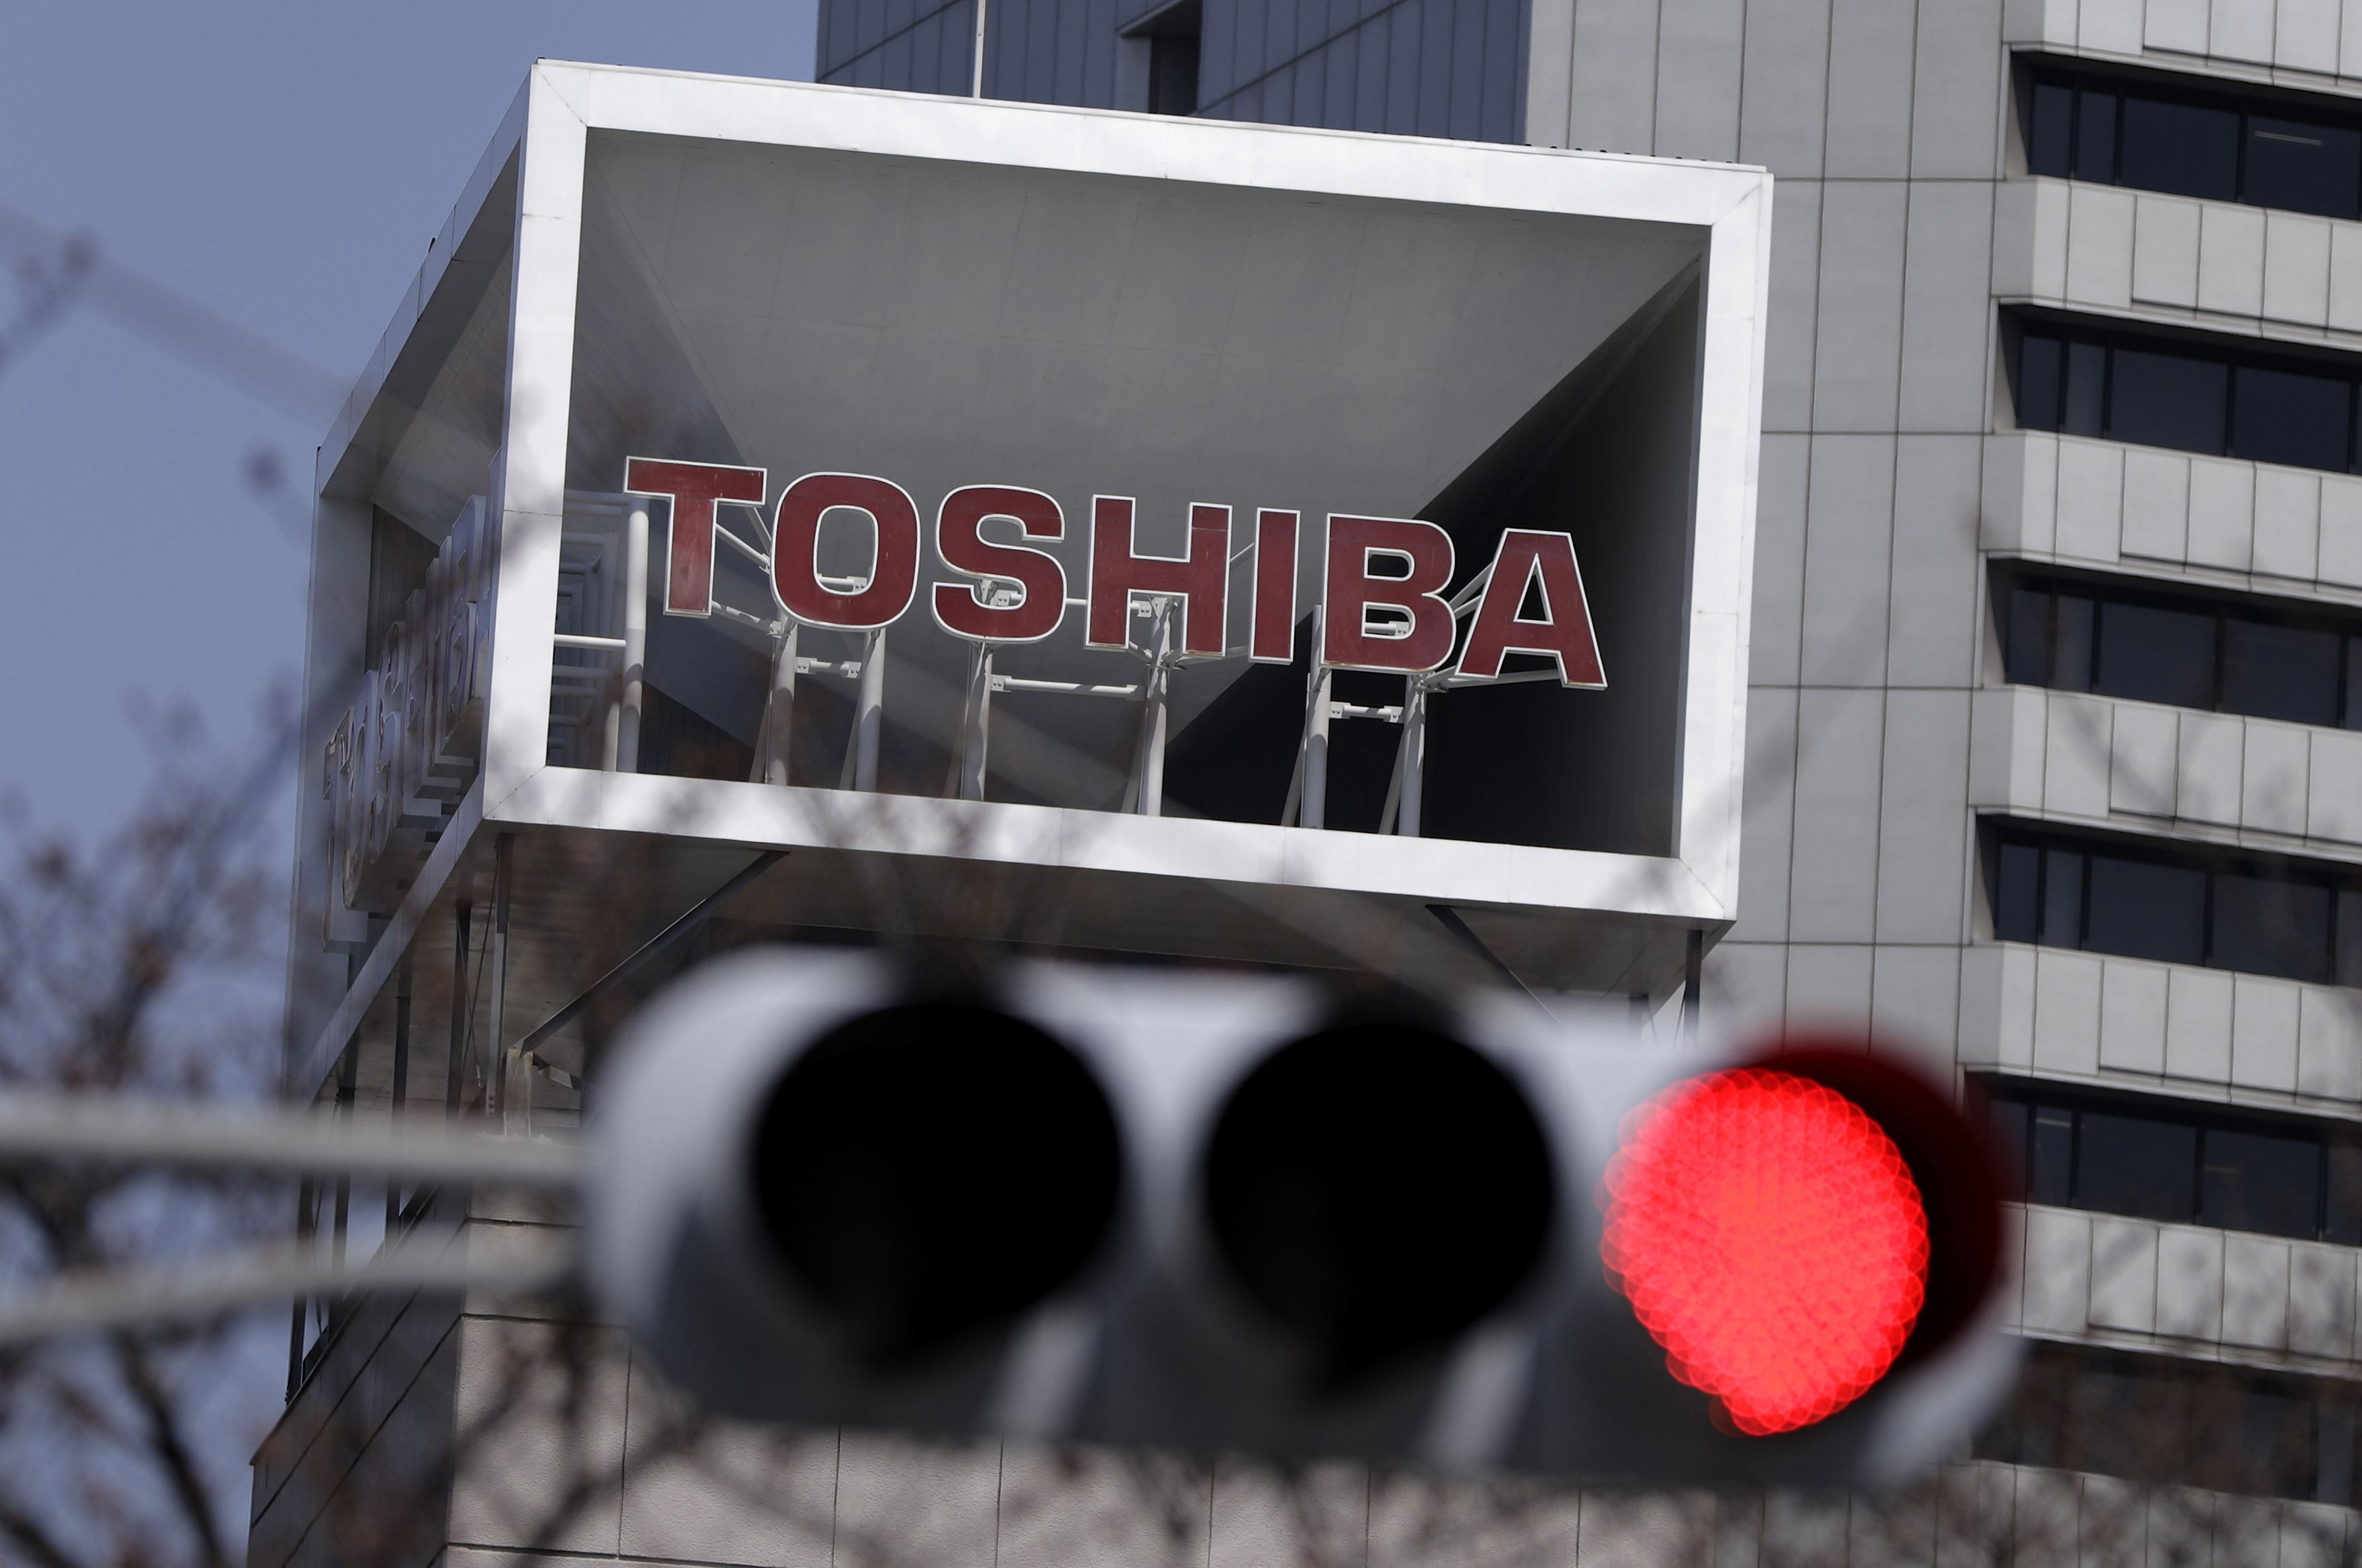 TOSHIBA-BG A Toshiba sign is displayed atop the company's headquarters in Tokyo on March 28, 2017.